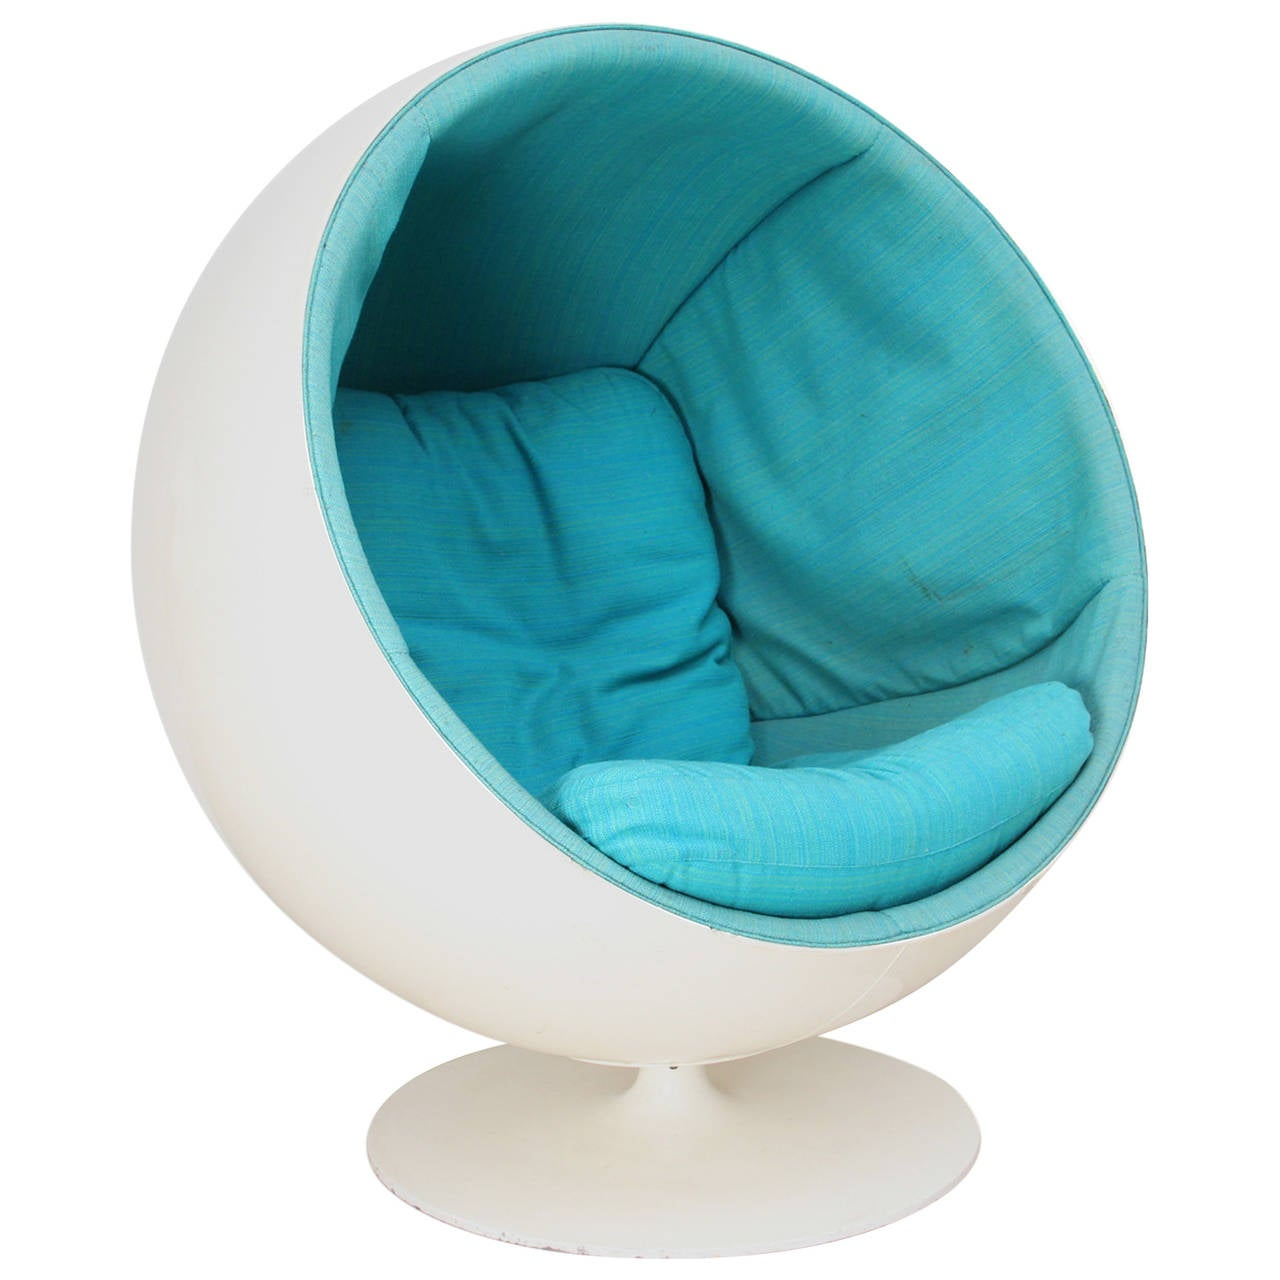 ball chair designed by eero aarnio and produced by asko in. Black Bedroom Furniture Sets. Home Design Ideas